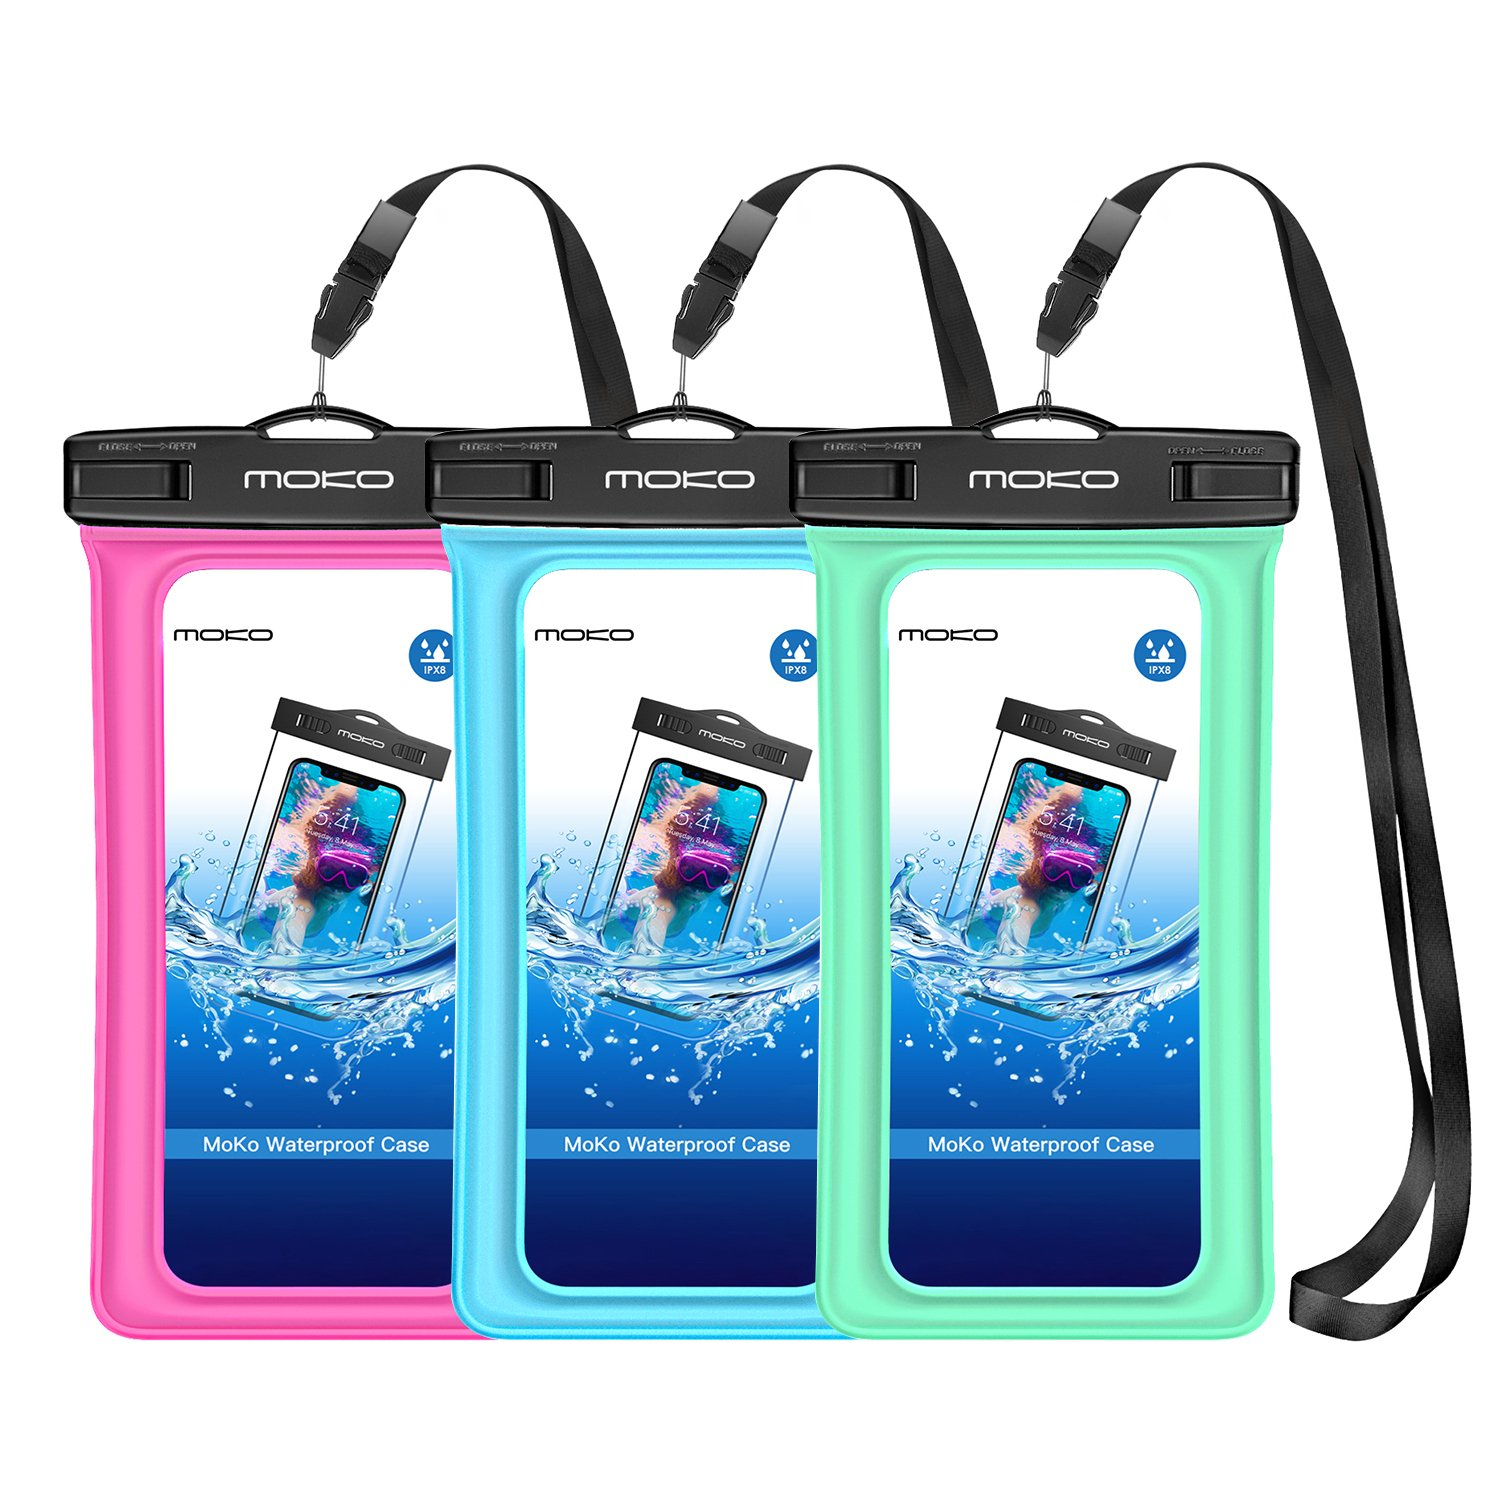 MoKo Floating Waterproof Phone Case [3 Pack], Universal Cellphone Pouch Dry Bag with Armband Neck Strap for iPhone X/8 Plus/8/7/6S Plus, Samsung Galaxy S9/S8 Plus, Note 9/8, Huawei, Google Nexus by MoKo (Image #1)